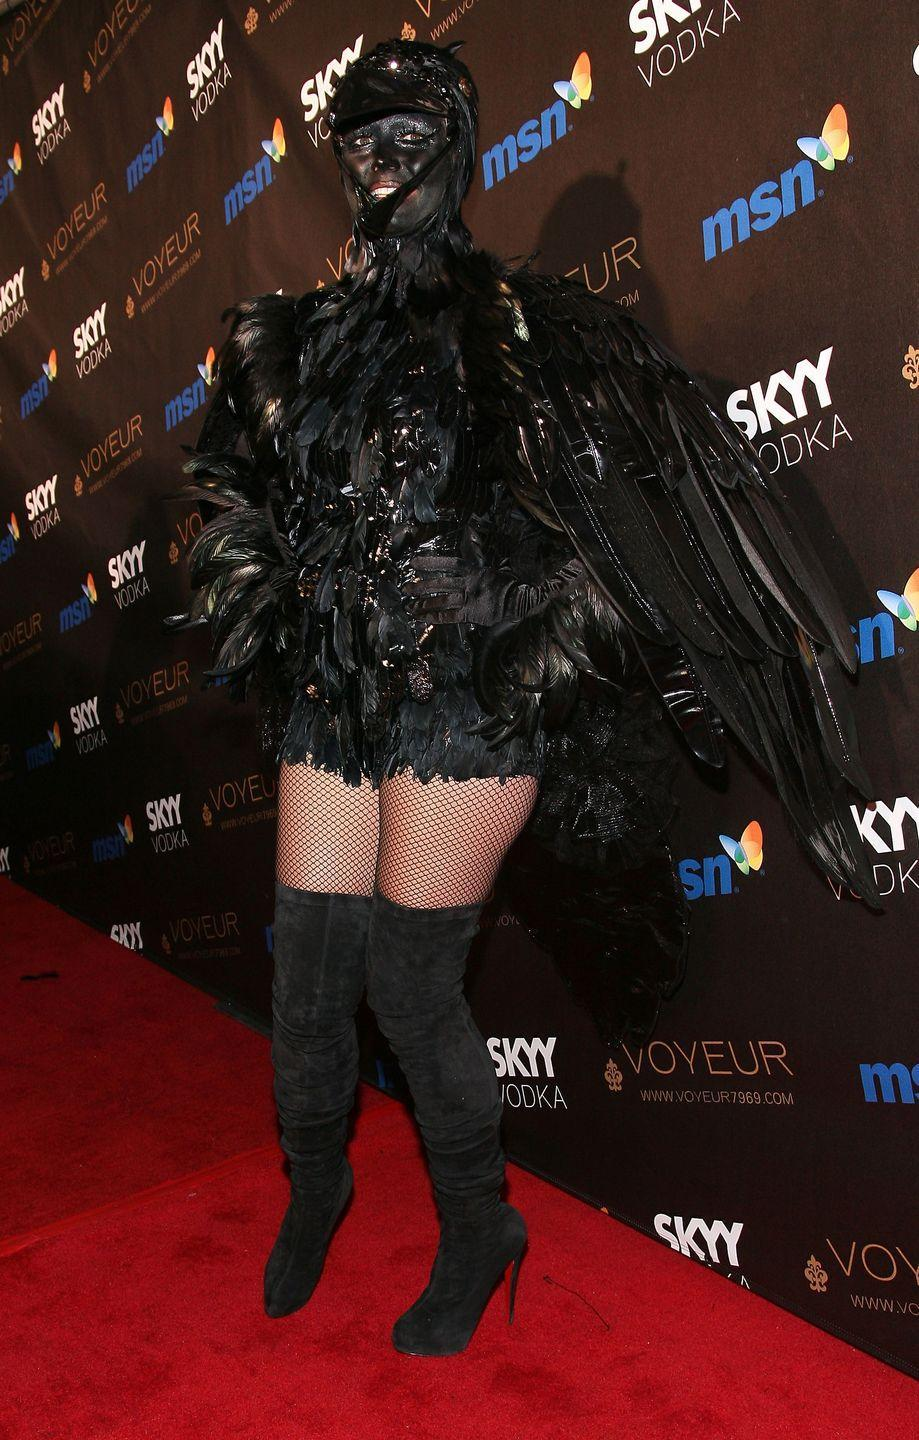 <p>In 2009, Heidi and her then-husband Seal wore matching Crow outfits. </p><p>We haven't a clue how they drank that night, but we're thinking straws might have been required. </p>